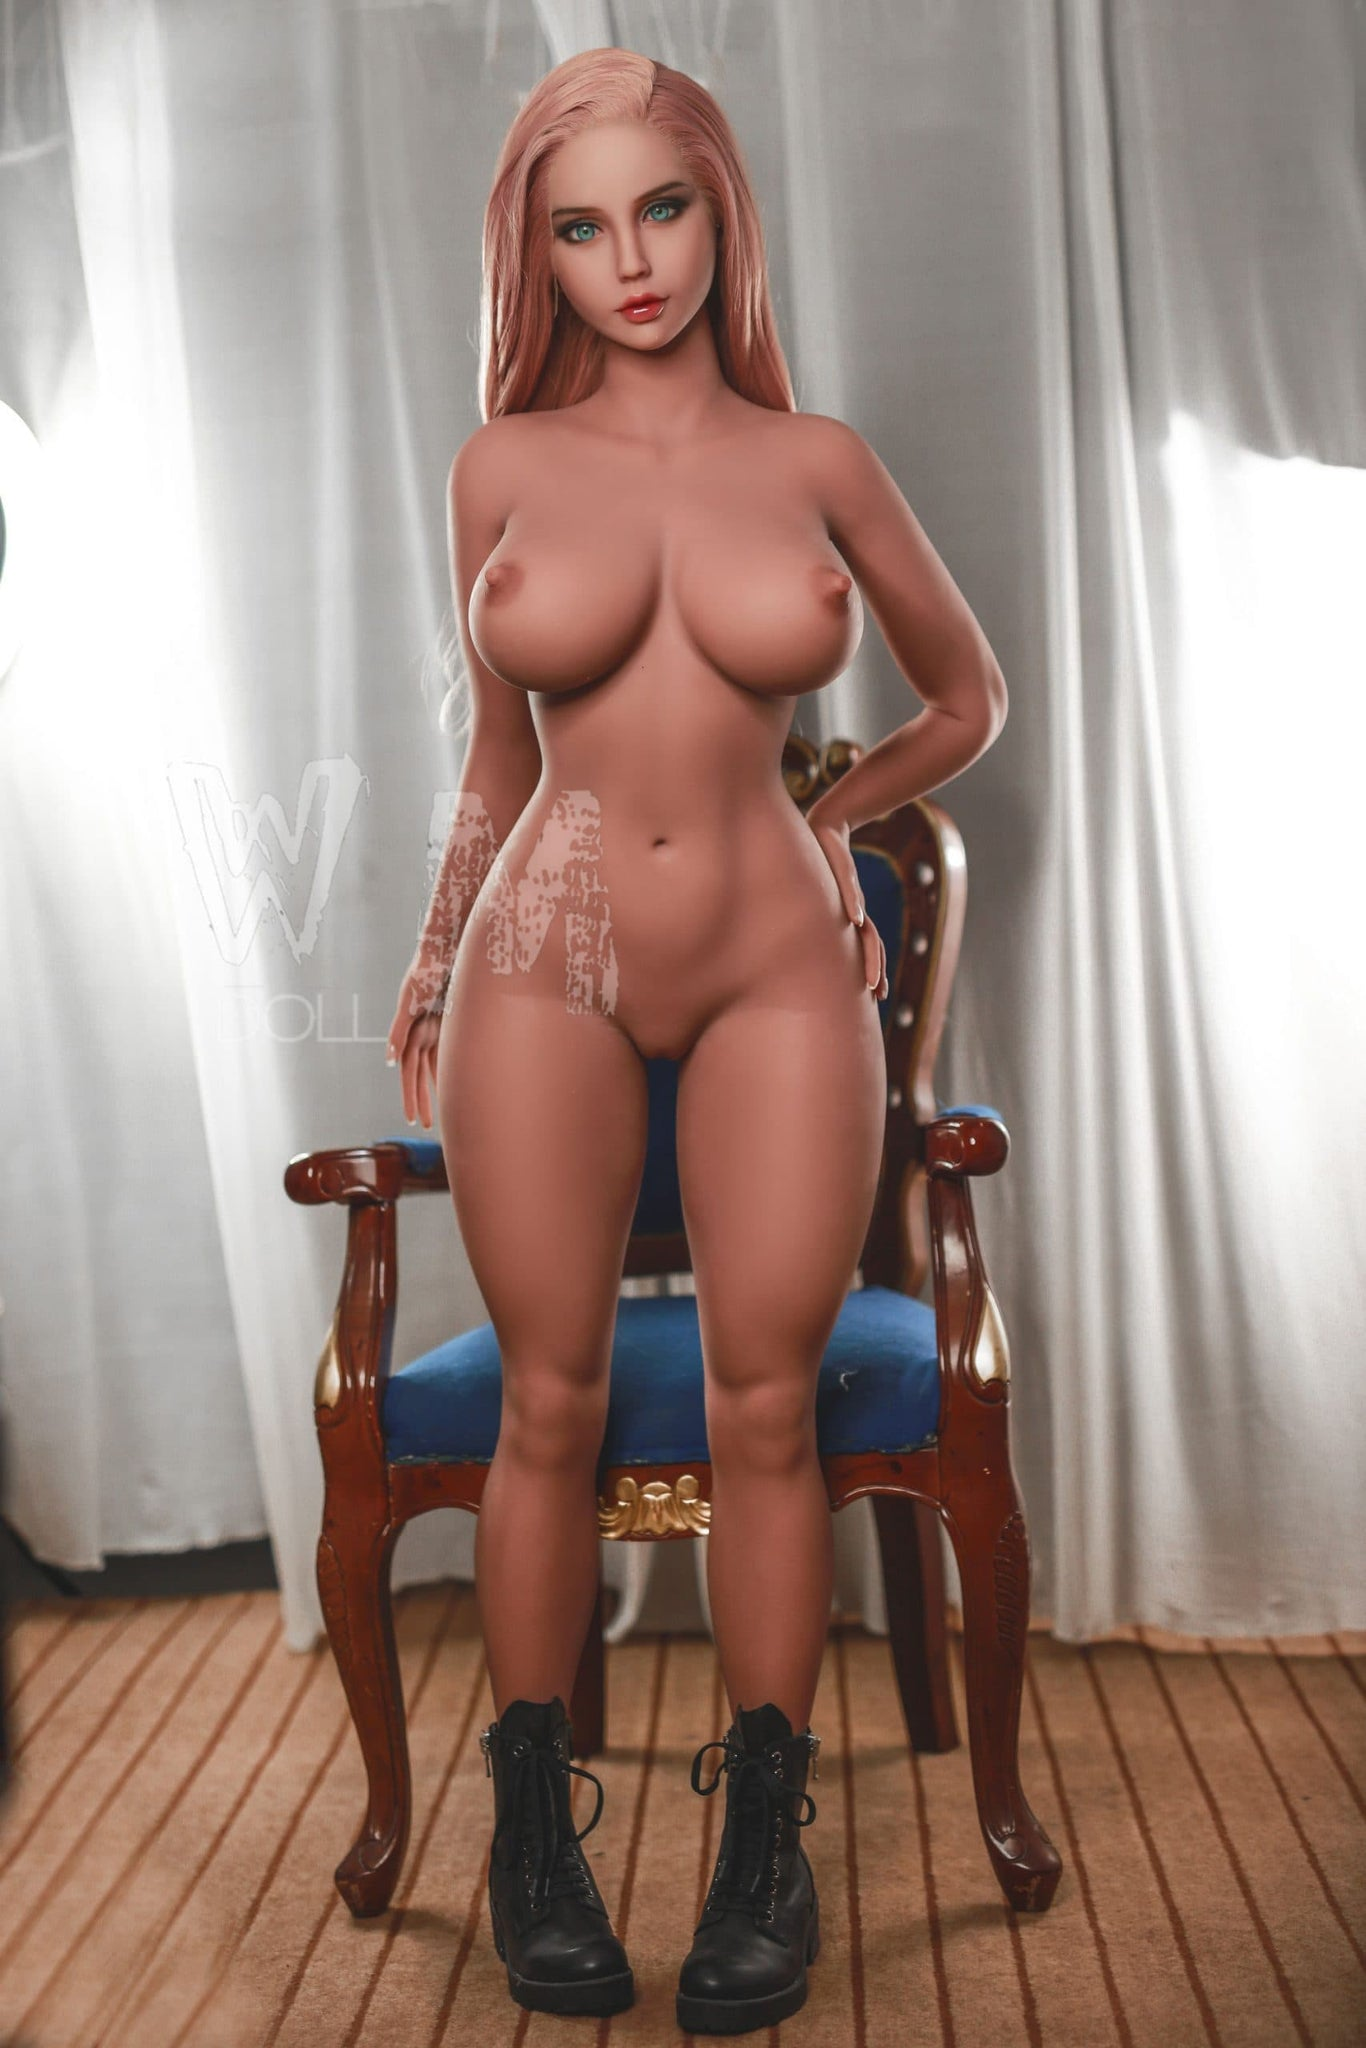 marisol 156cm big boobs athletic best tan skin tpe wm sex doll(11)